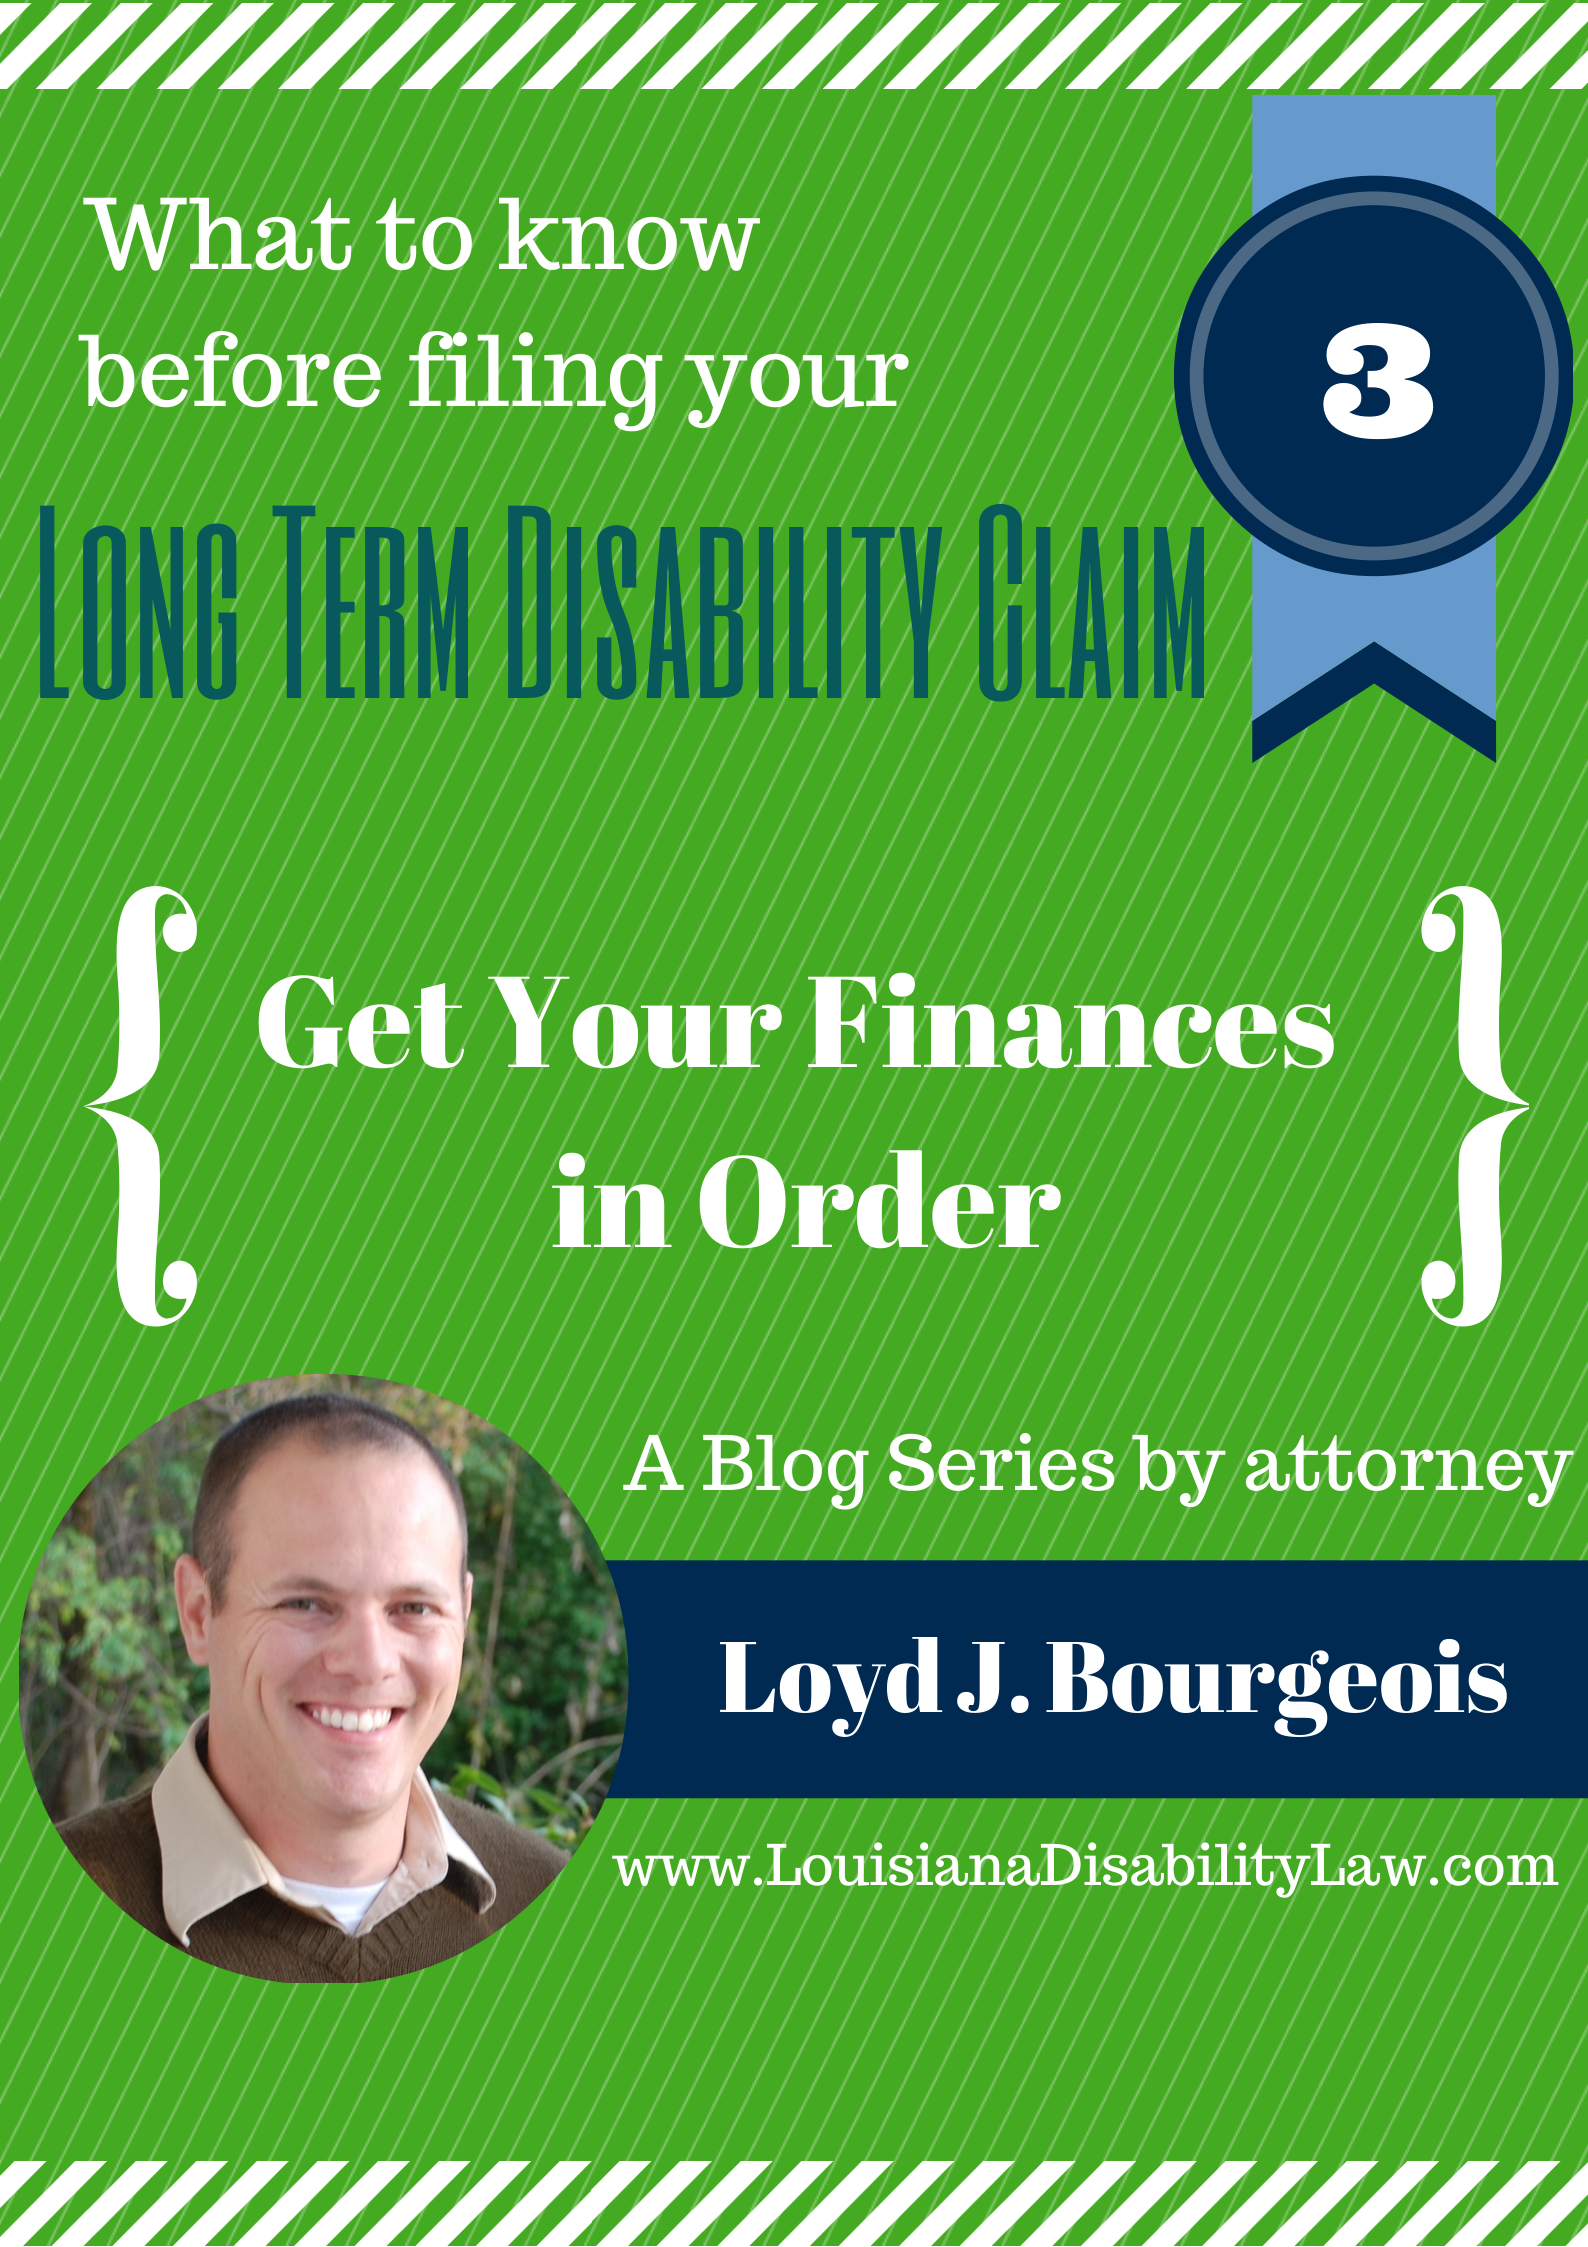 Long-Term Disability: Get Your Finances in Order | Loyd J